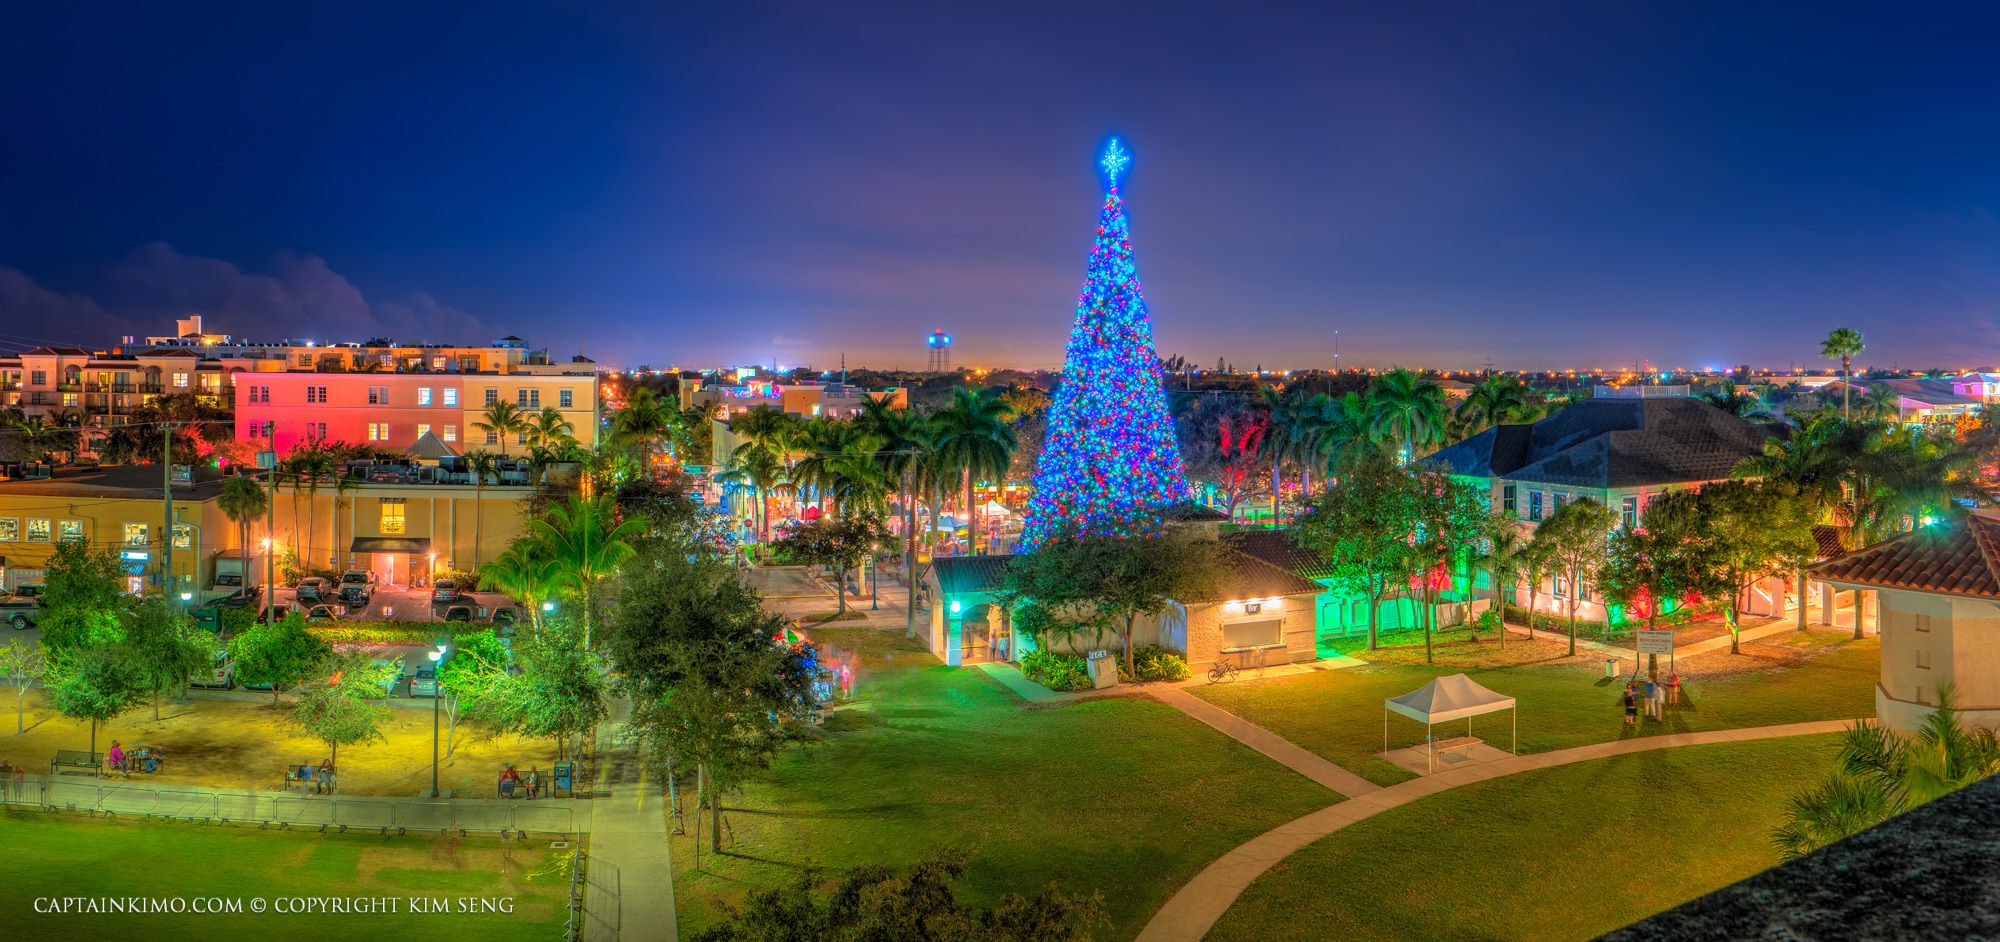 Christmas In Florida Images.Christmas In Delray Beach Florida Christmas In Florida